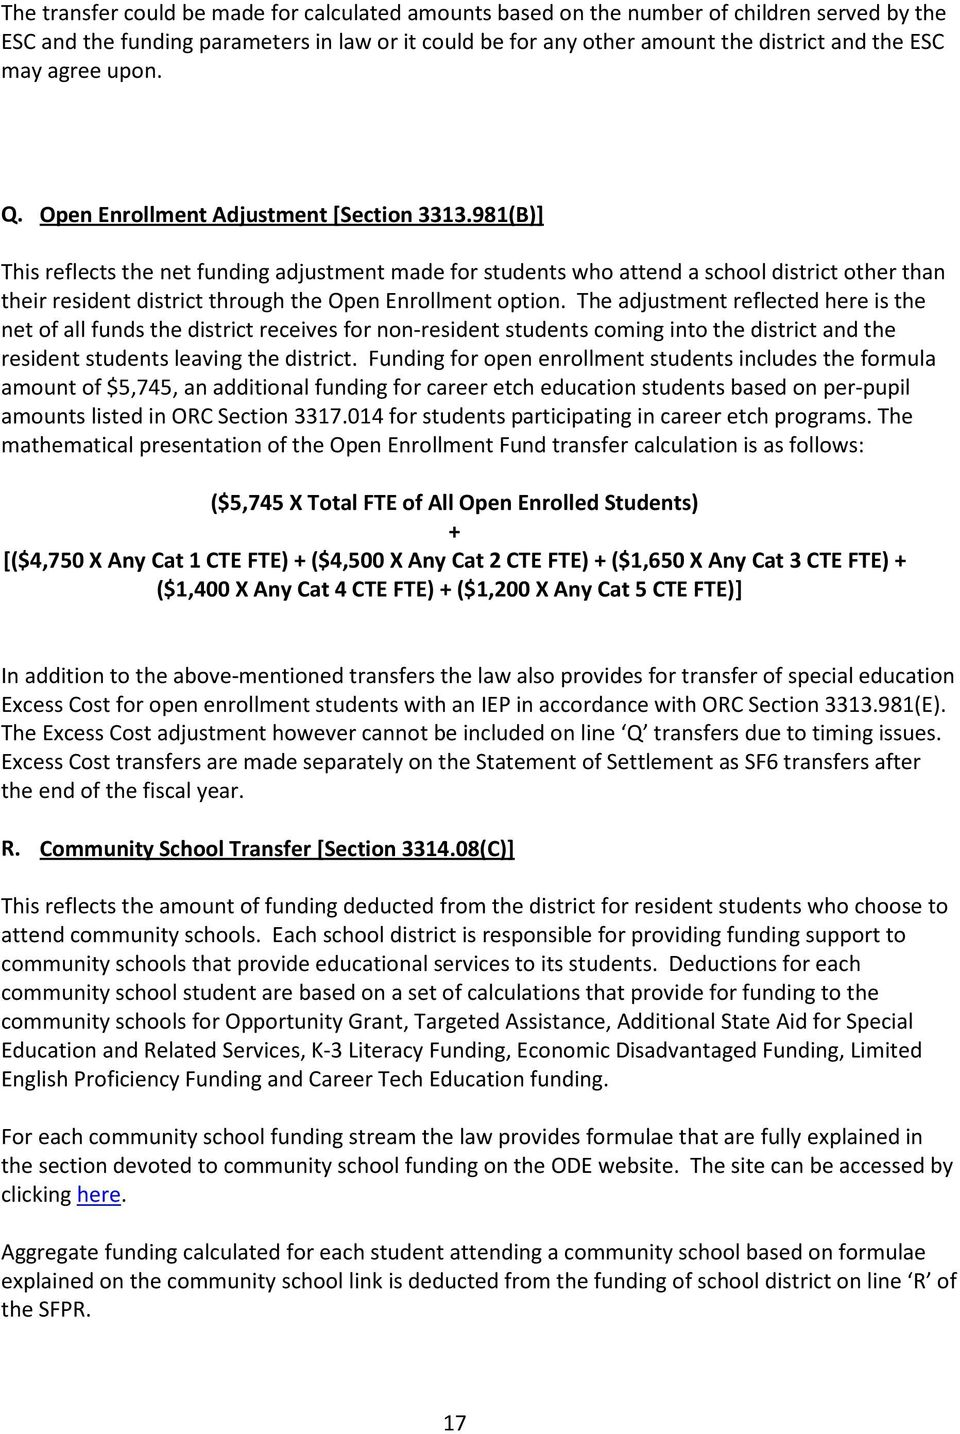 981(B)] This reflects the net funding adjustment made for students who attend a school district other than their resident district through the Open Enrollment option.